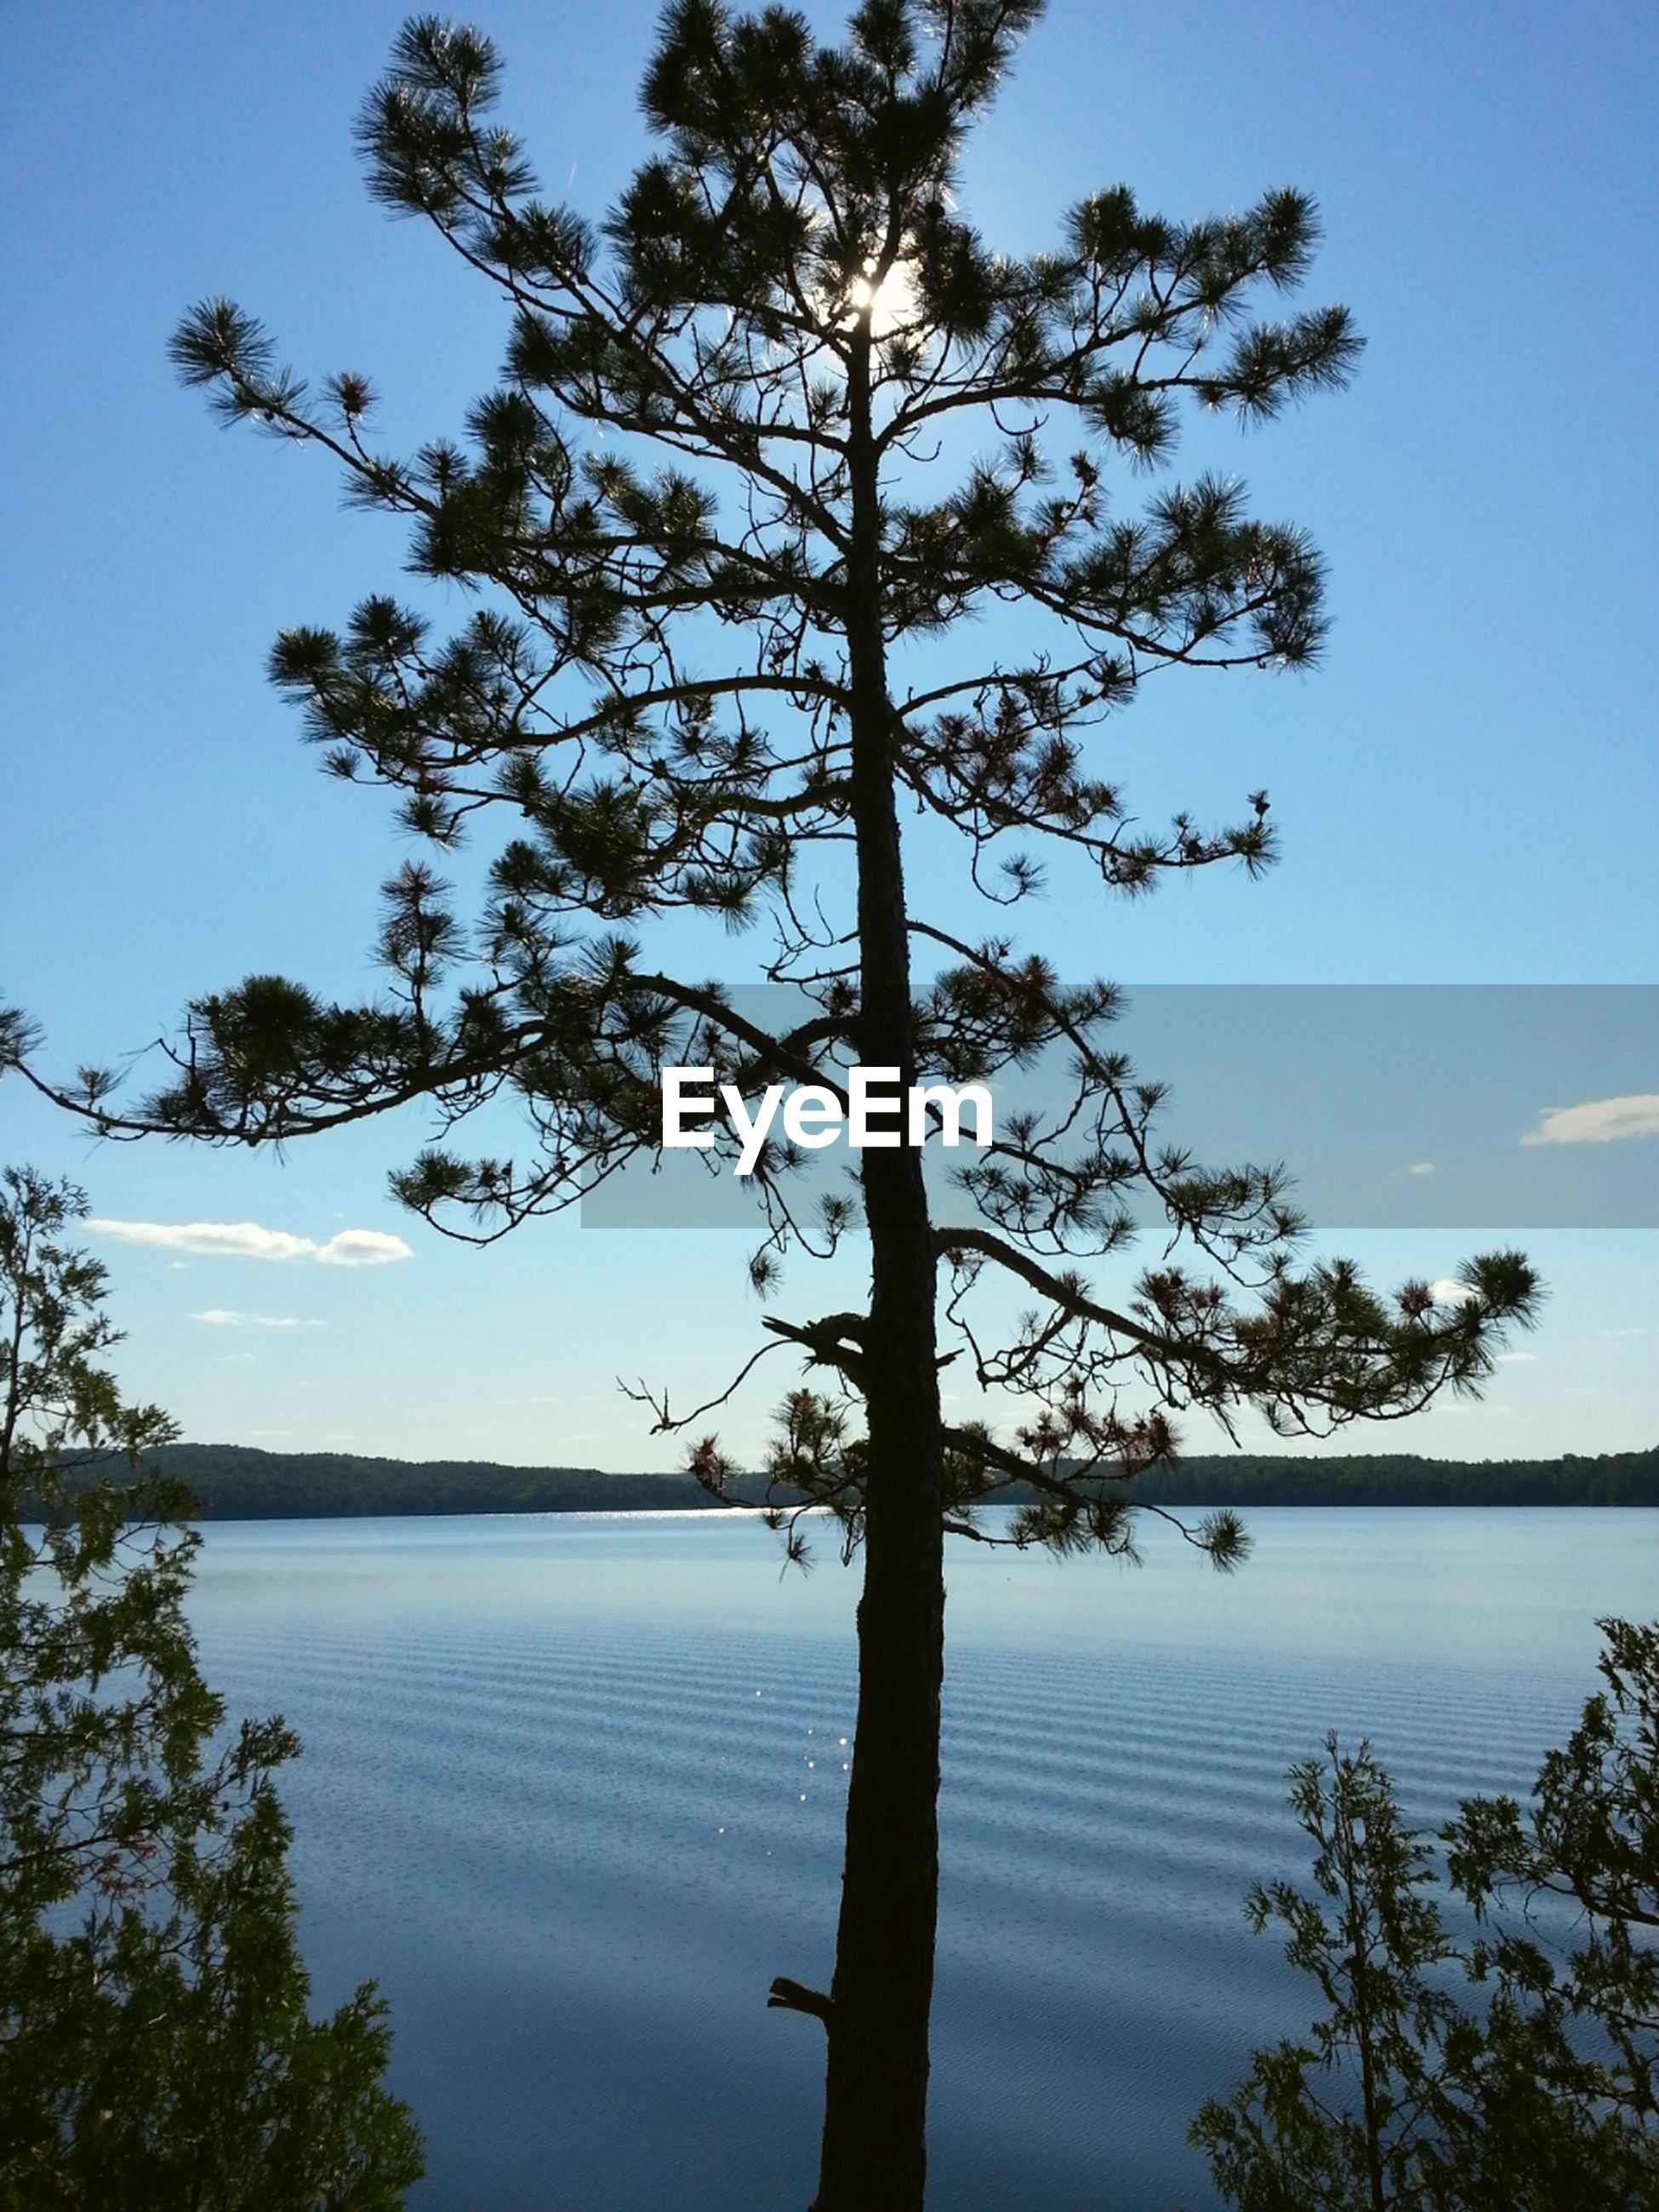 tree, water, tranquility, tranquil scene, scenics, beauty in nature, lake, blue, silhouette, nature, branch, reflection, clear sky, sky, idyllic, tree trunk, growth, calm, no people, outdoors